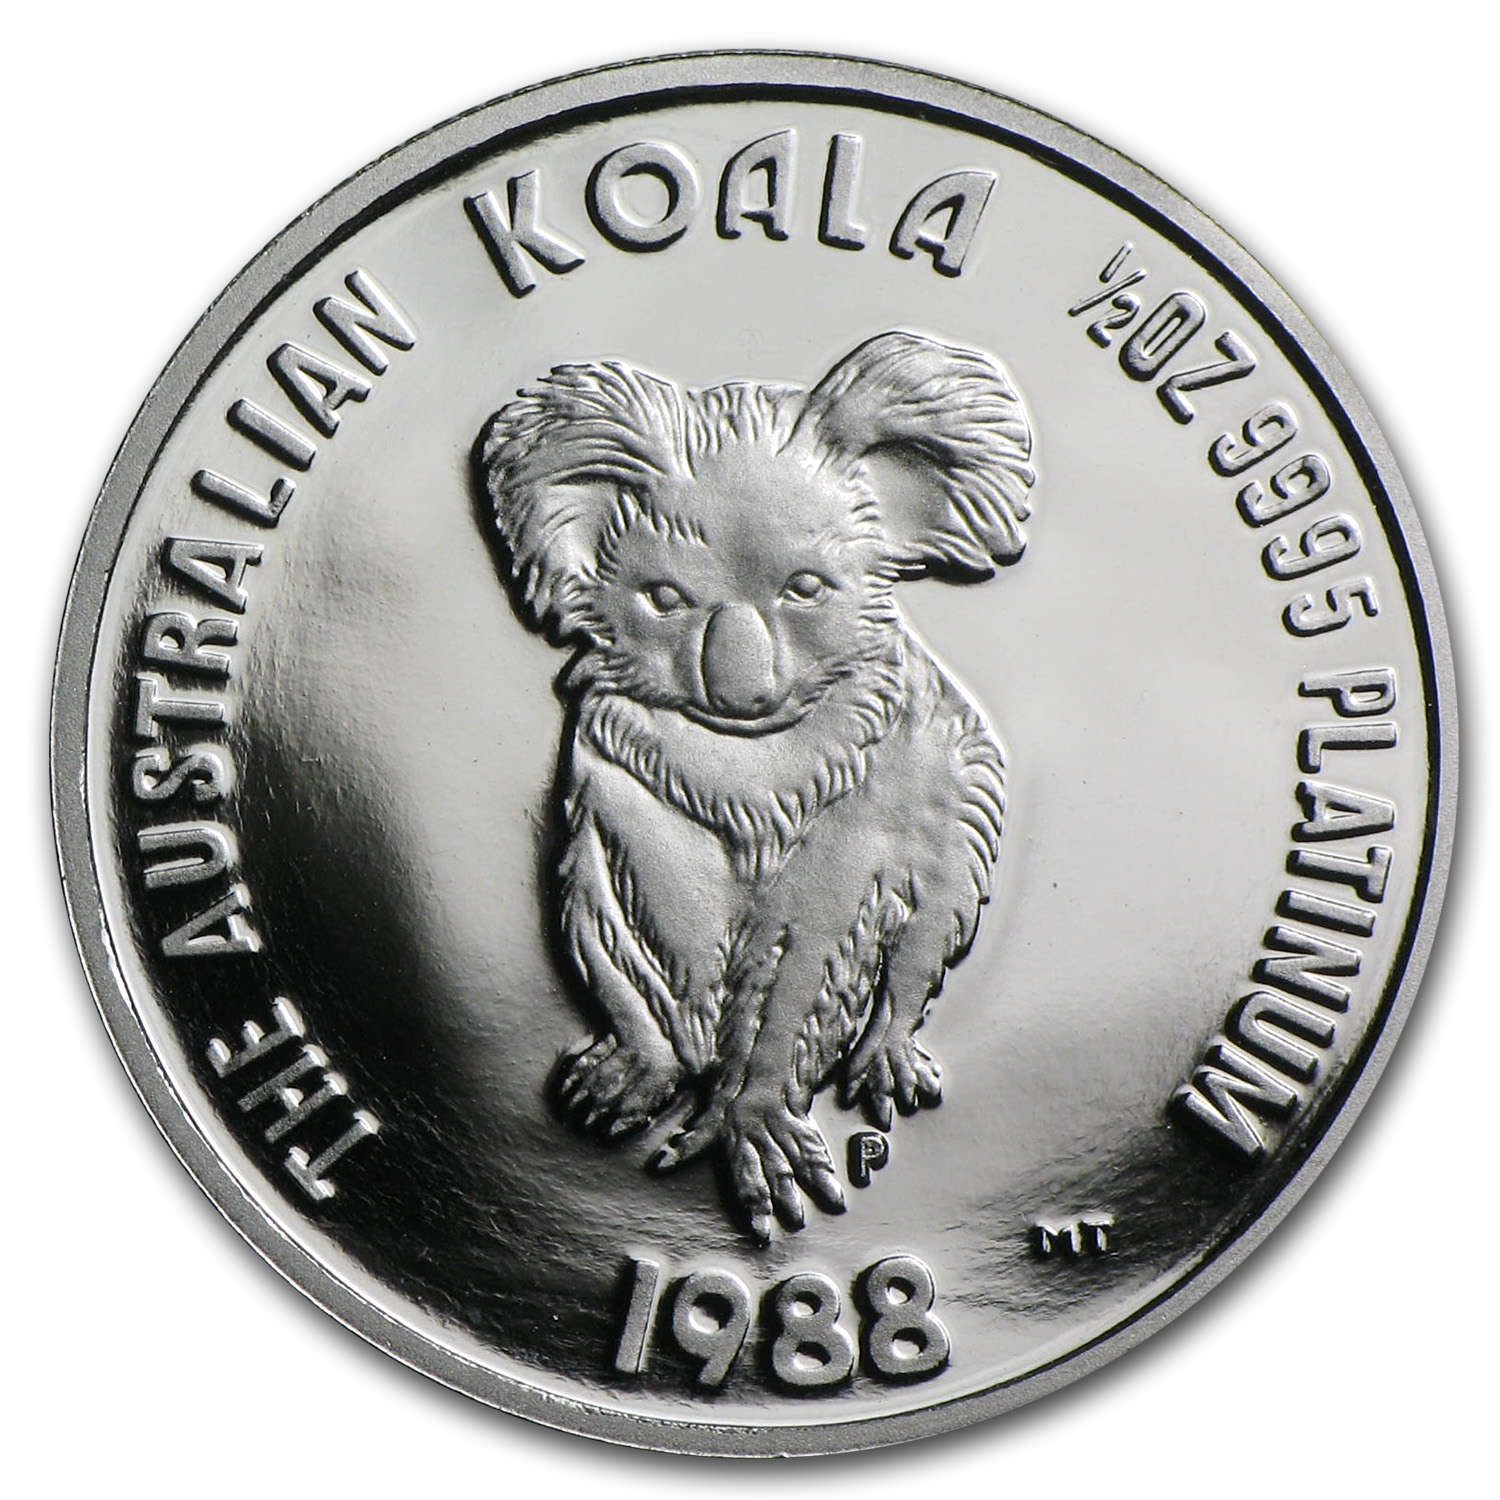 1988 Australia 1/2 oz Proof Platinum Koala